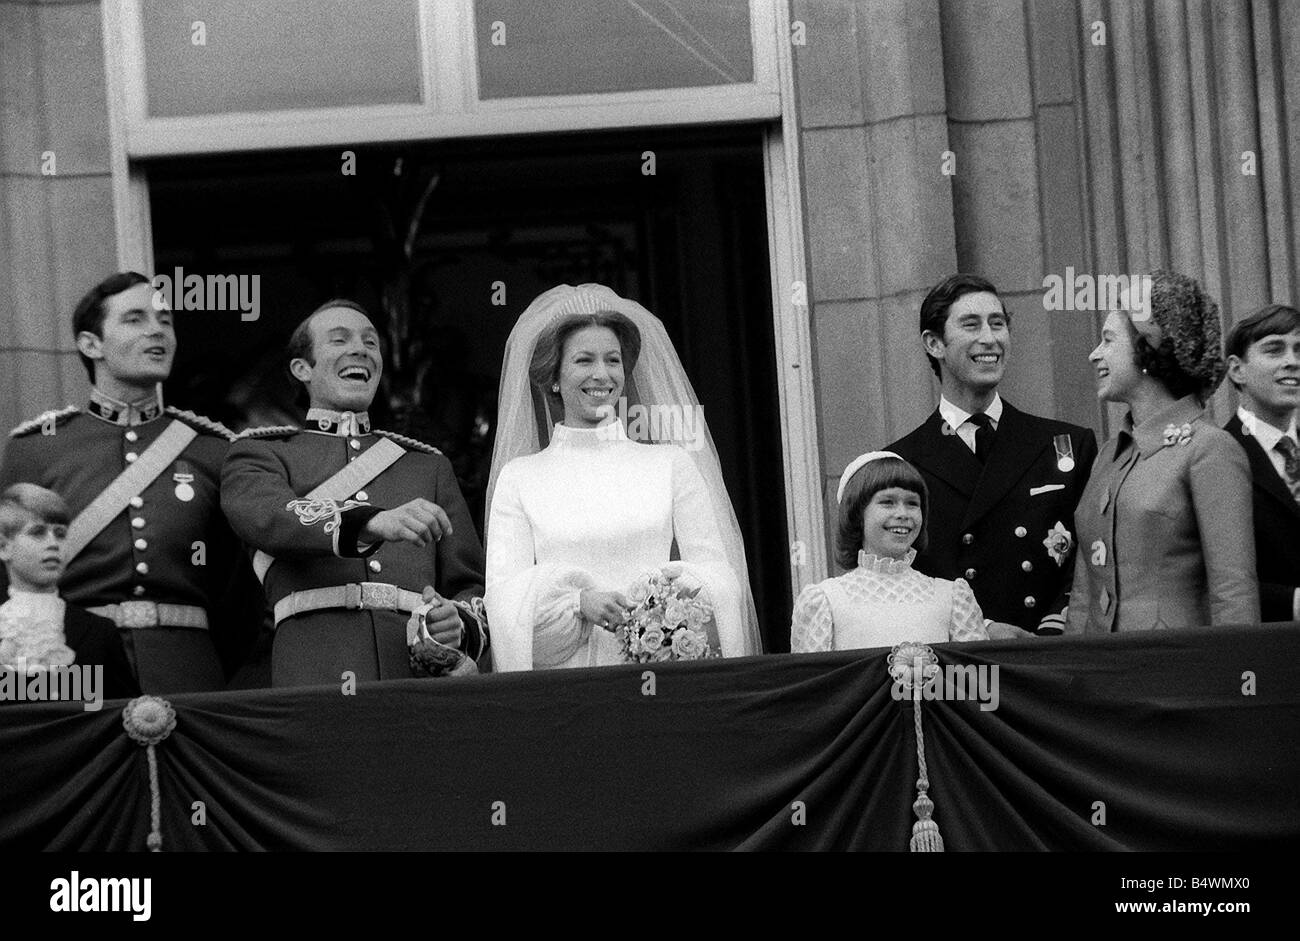 Queen Elizabeth Hochzeit Wedding Of Princess Anne To Mark Phillips On Balcony 1973 Of Stock